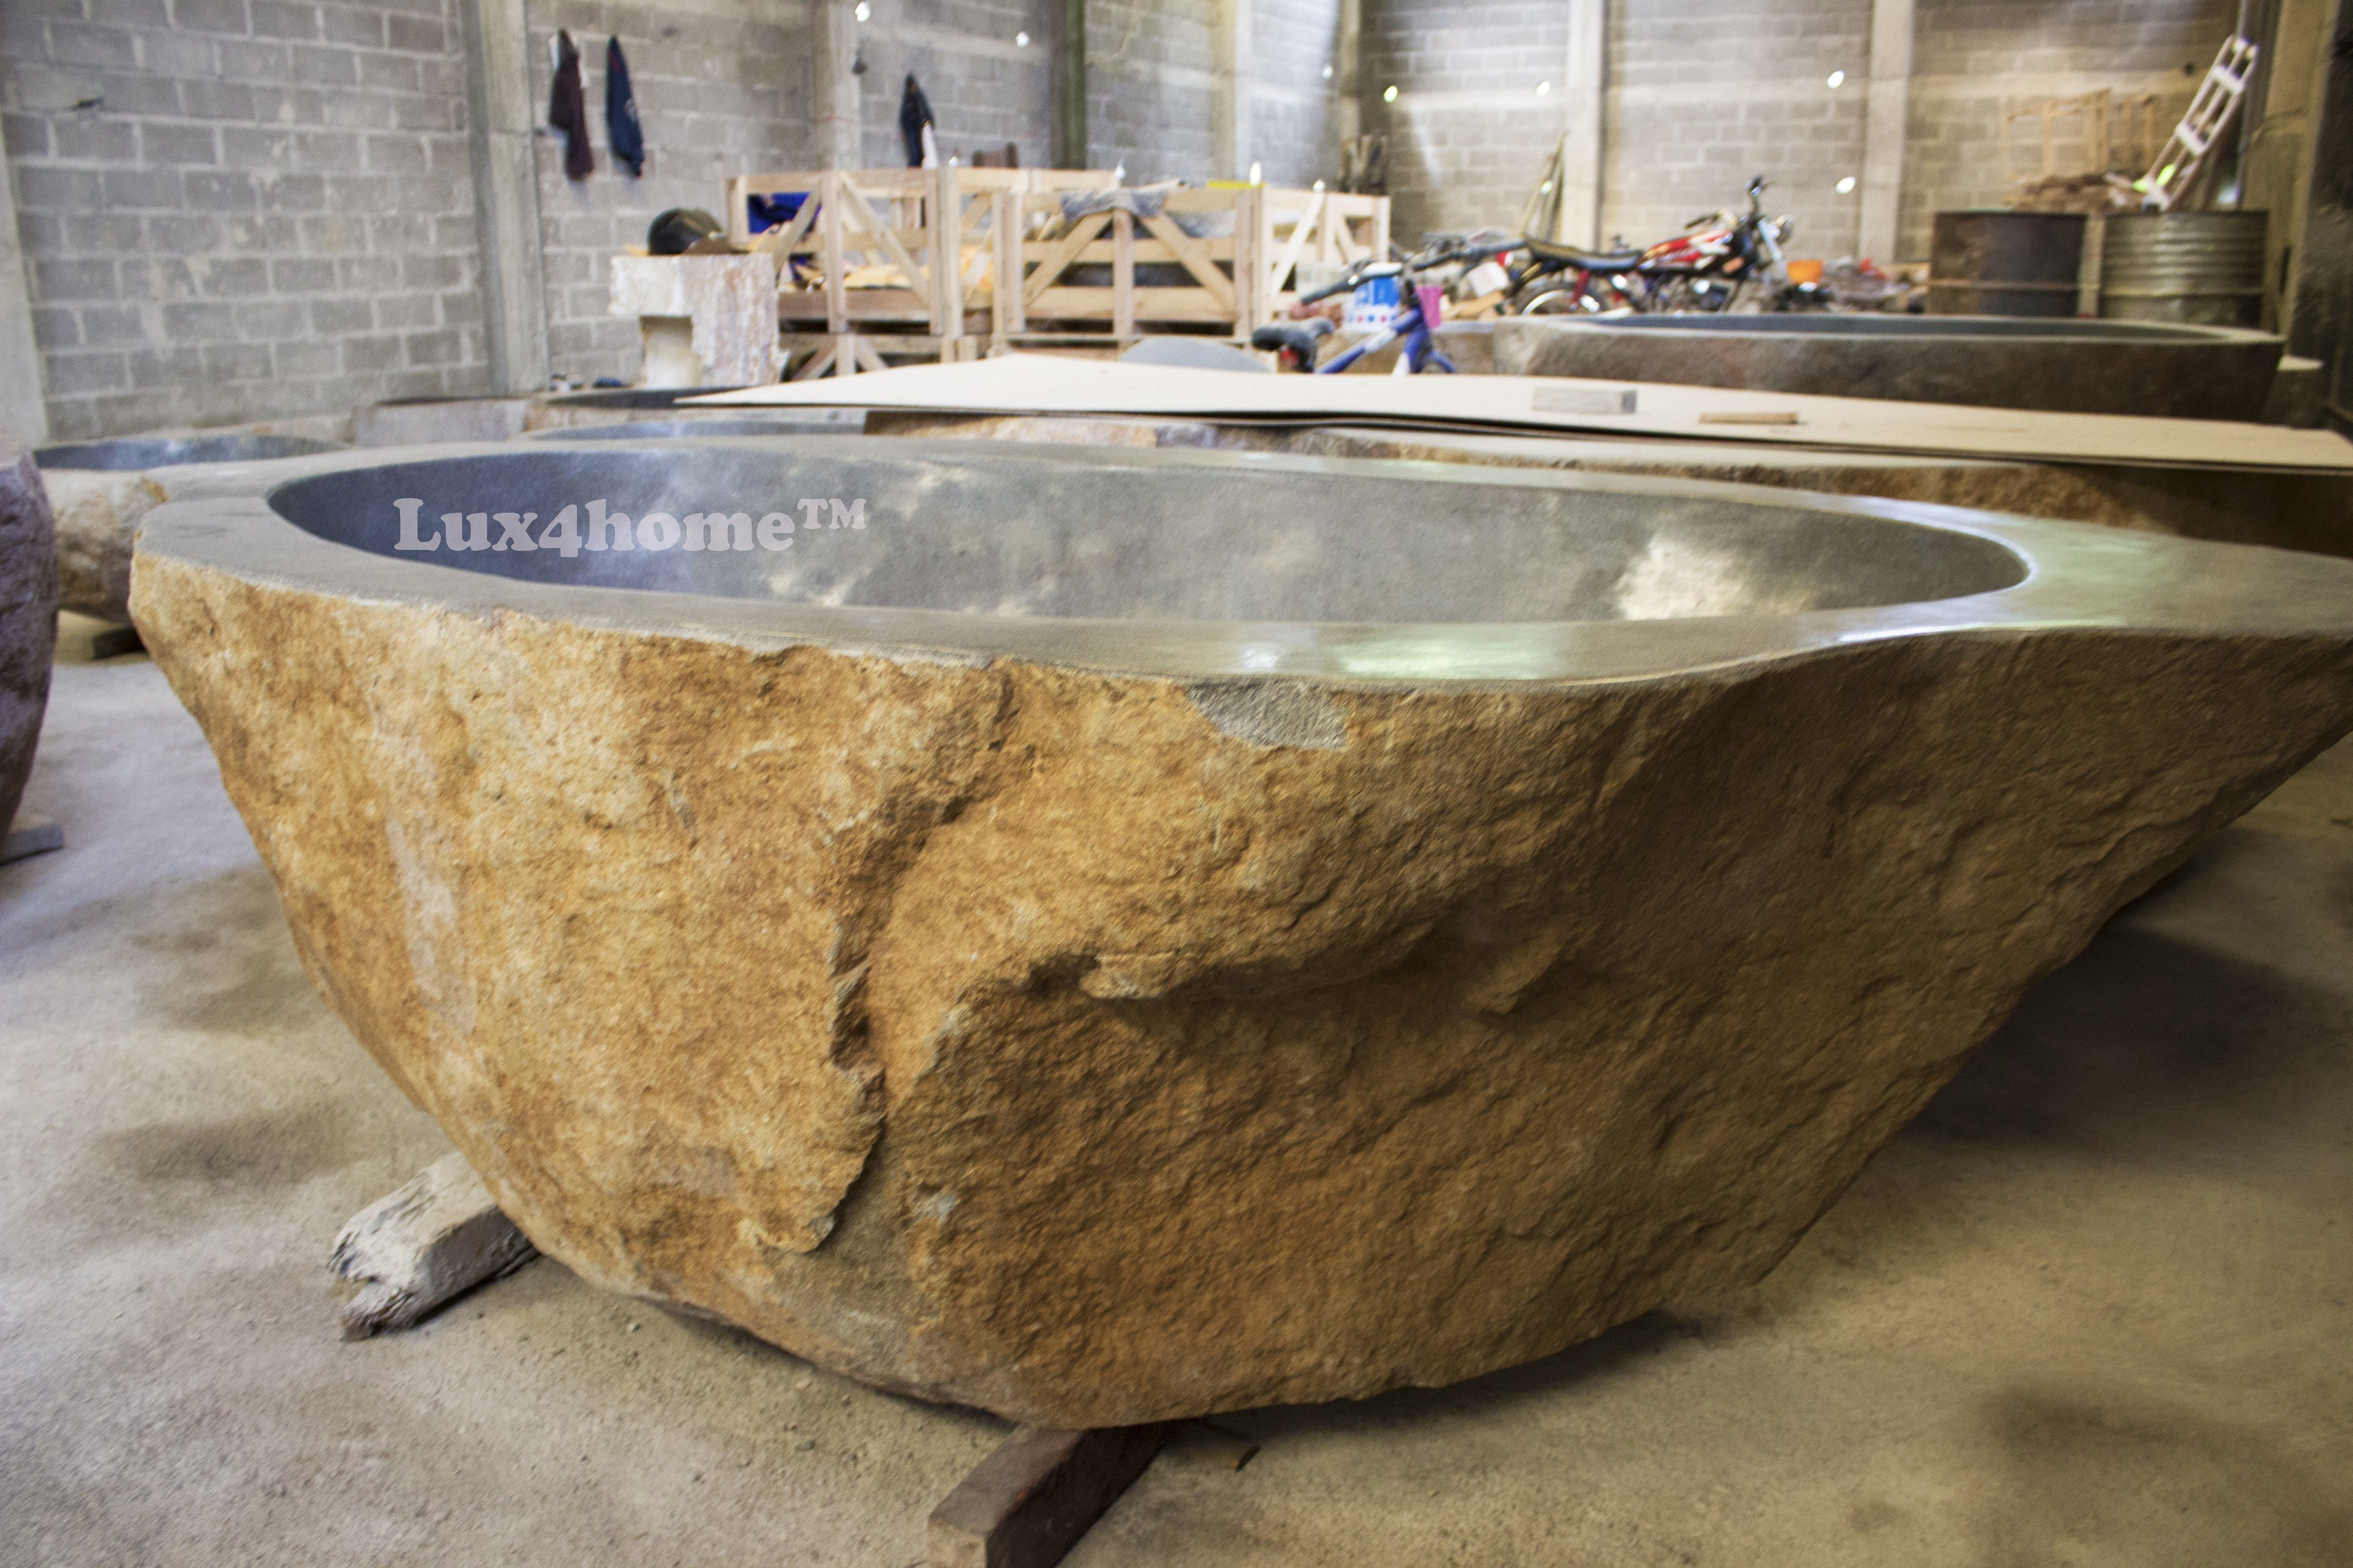 Steinwaschbecken Bali Indonesia Bali Stone Bathtubs For Sale The Price Stone Bathtub